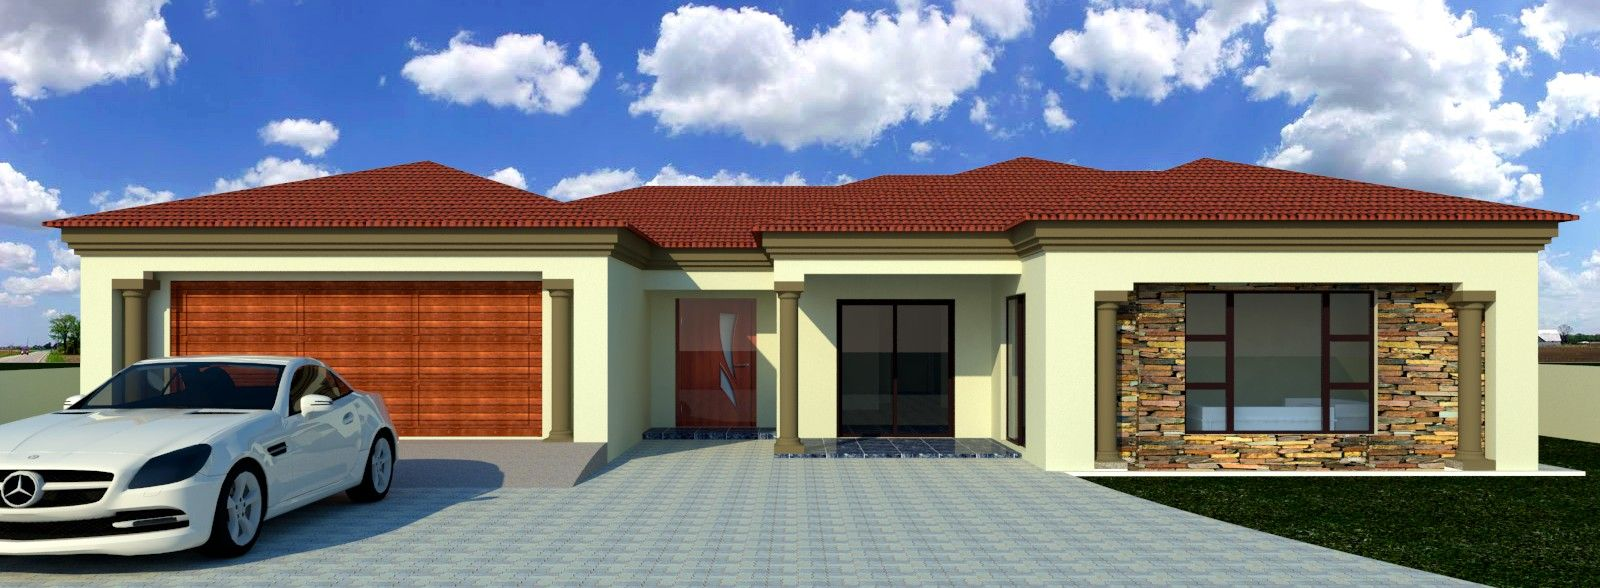 Modern African House Plans Lovely Bedroom African House Design Agreeable Home In The Modern Also Tuscan House Plans House Plans South Africa African House